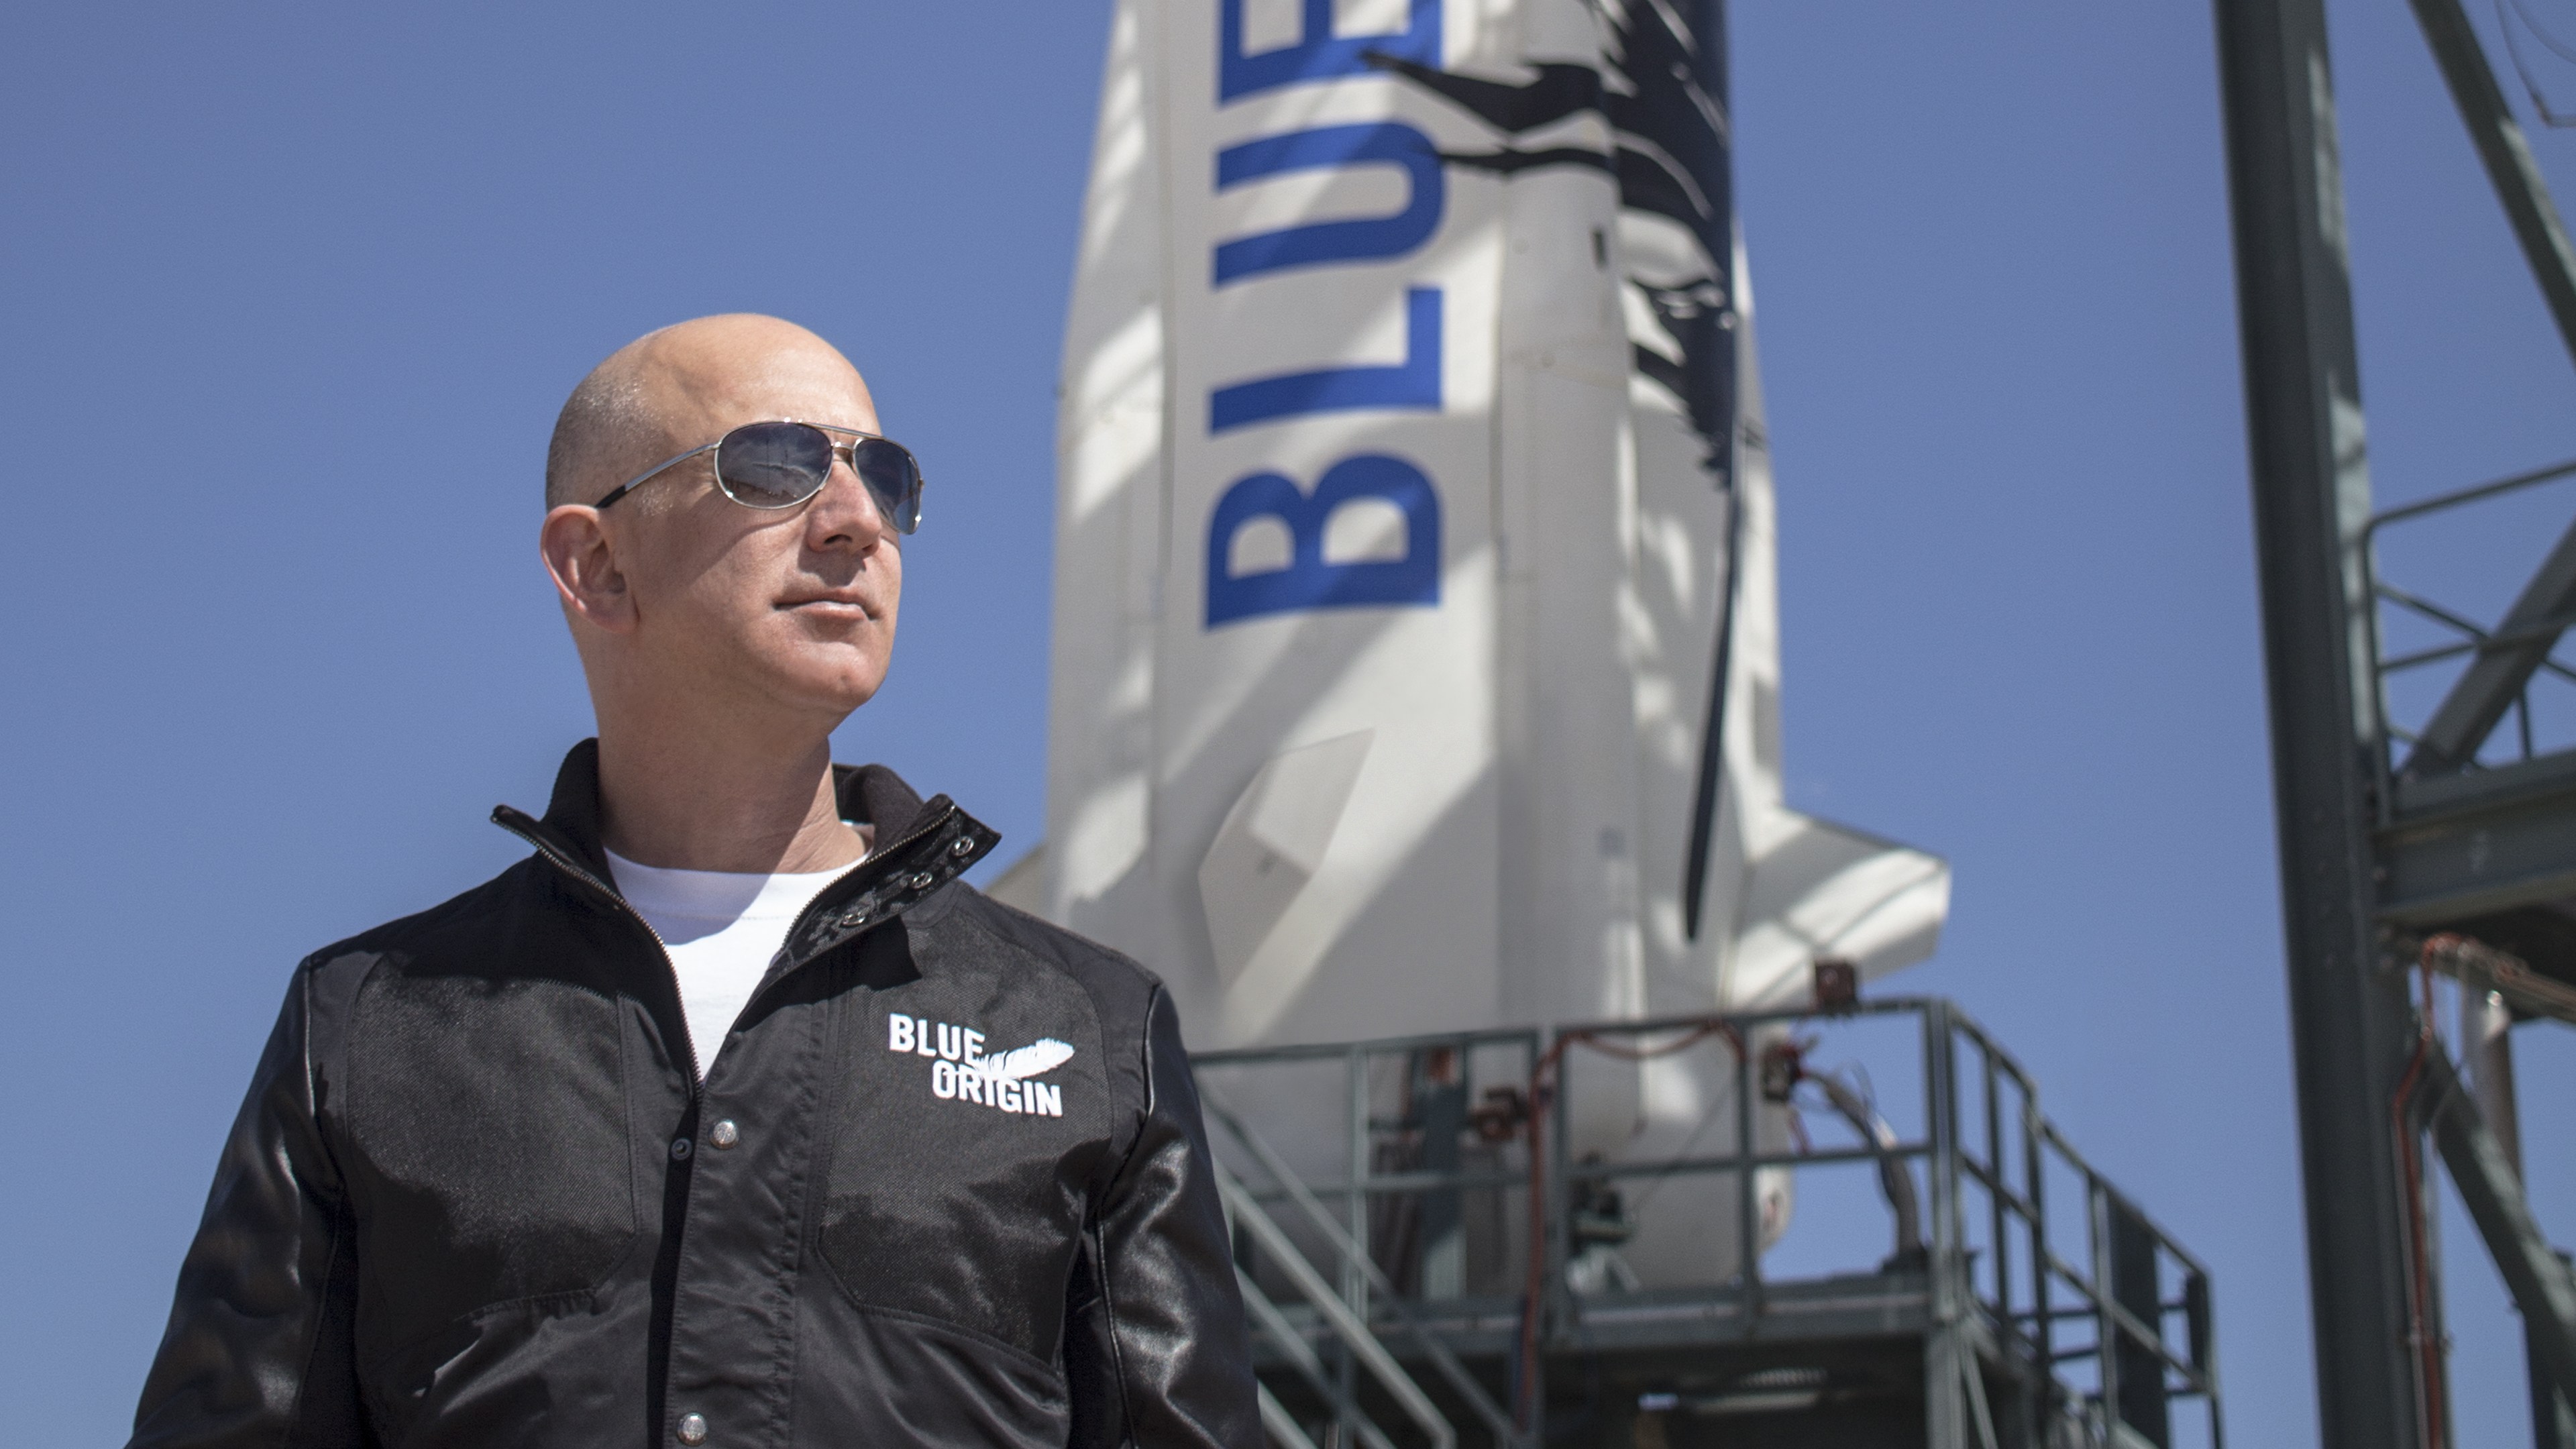 Blue Origin founder Jeff Bezos stands near his firm's New Shepard rocket before its maiden voyage. Blue Origin launched the same rocket and crew capsule on its third test flight, which included a successful landing in West Texas, on April 2, 2016.